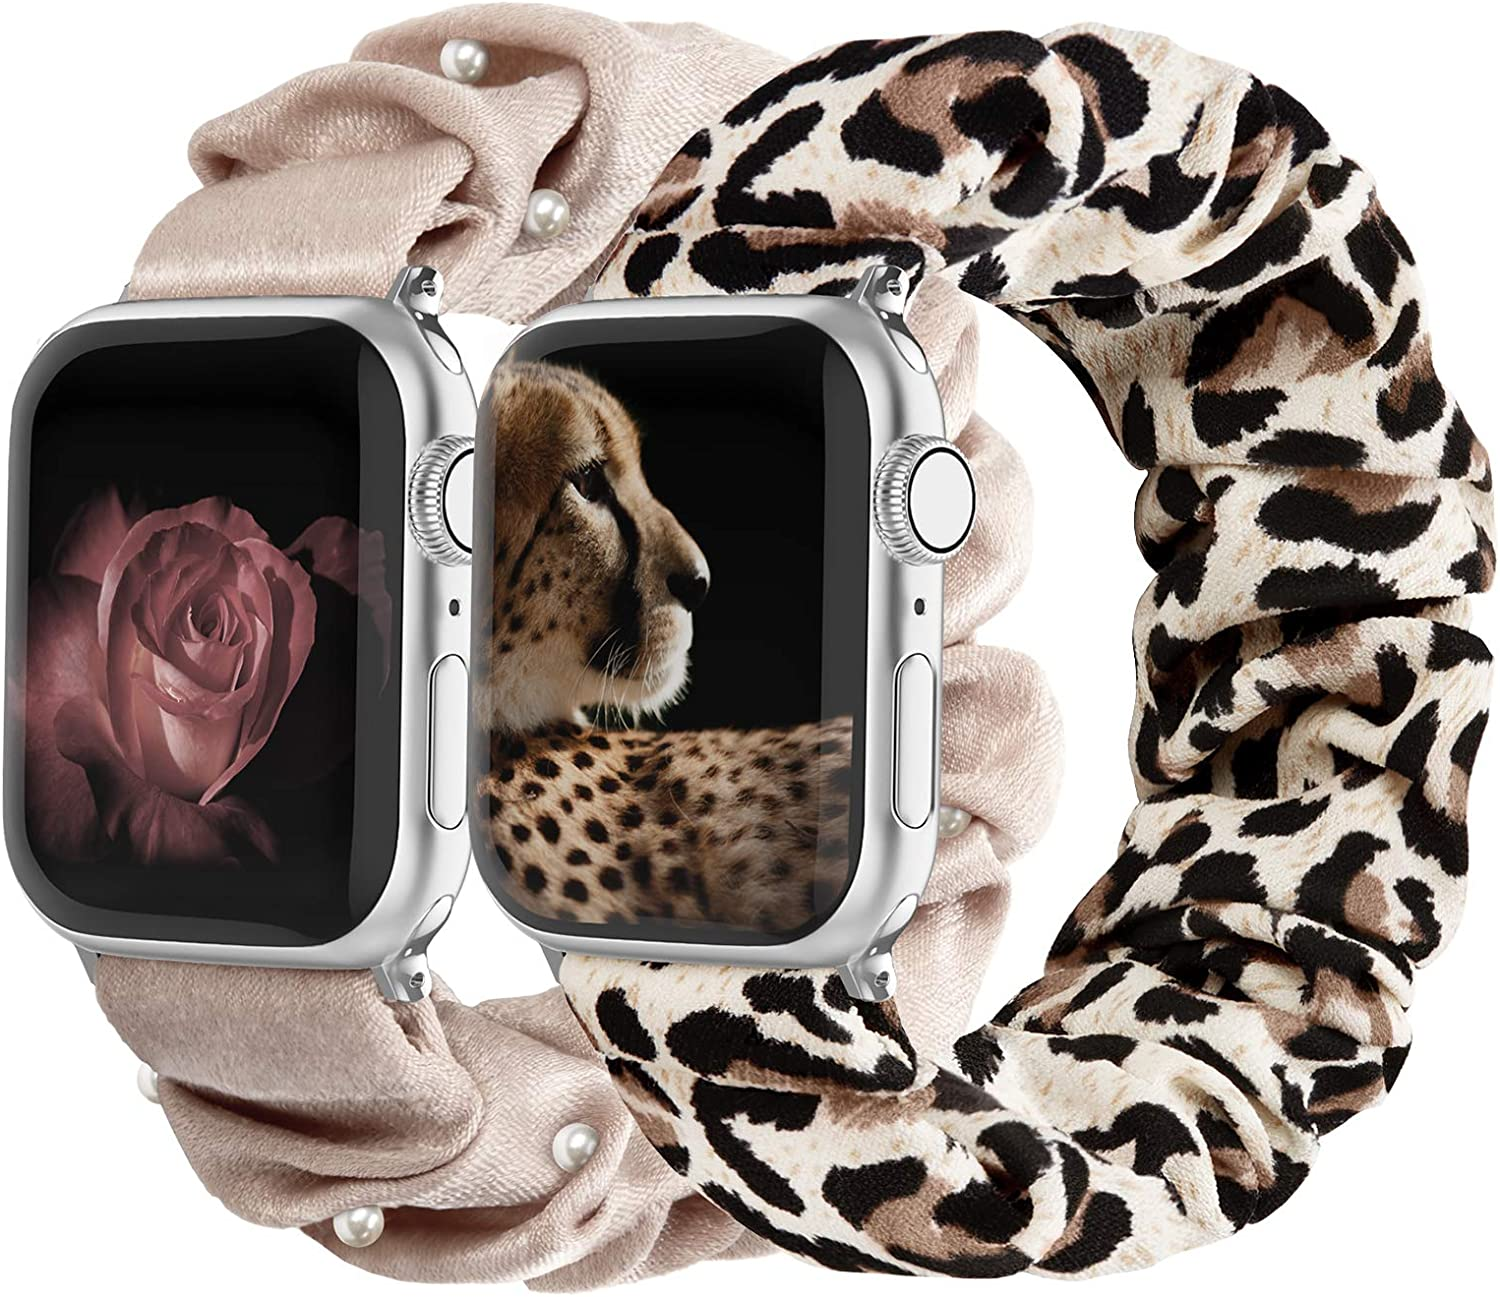 Compatible with Scrunchies Apple Watch Bands 42mm 44mm, Women Cloth Pattern Printed Fabric Wristbands Straps Elastic Scrunchy Band for iWatch Series 6 5 4 3 2 1 SE (Small Pink with Pearl, Leopard)